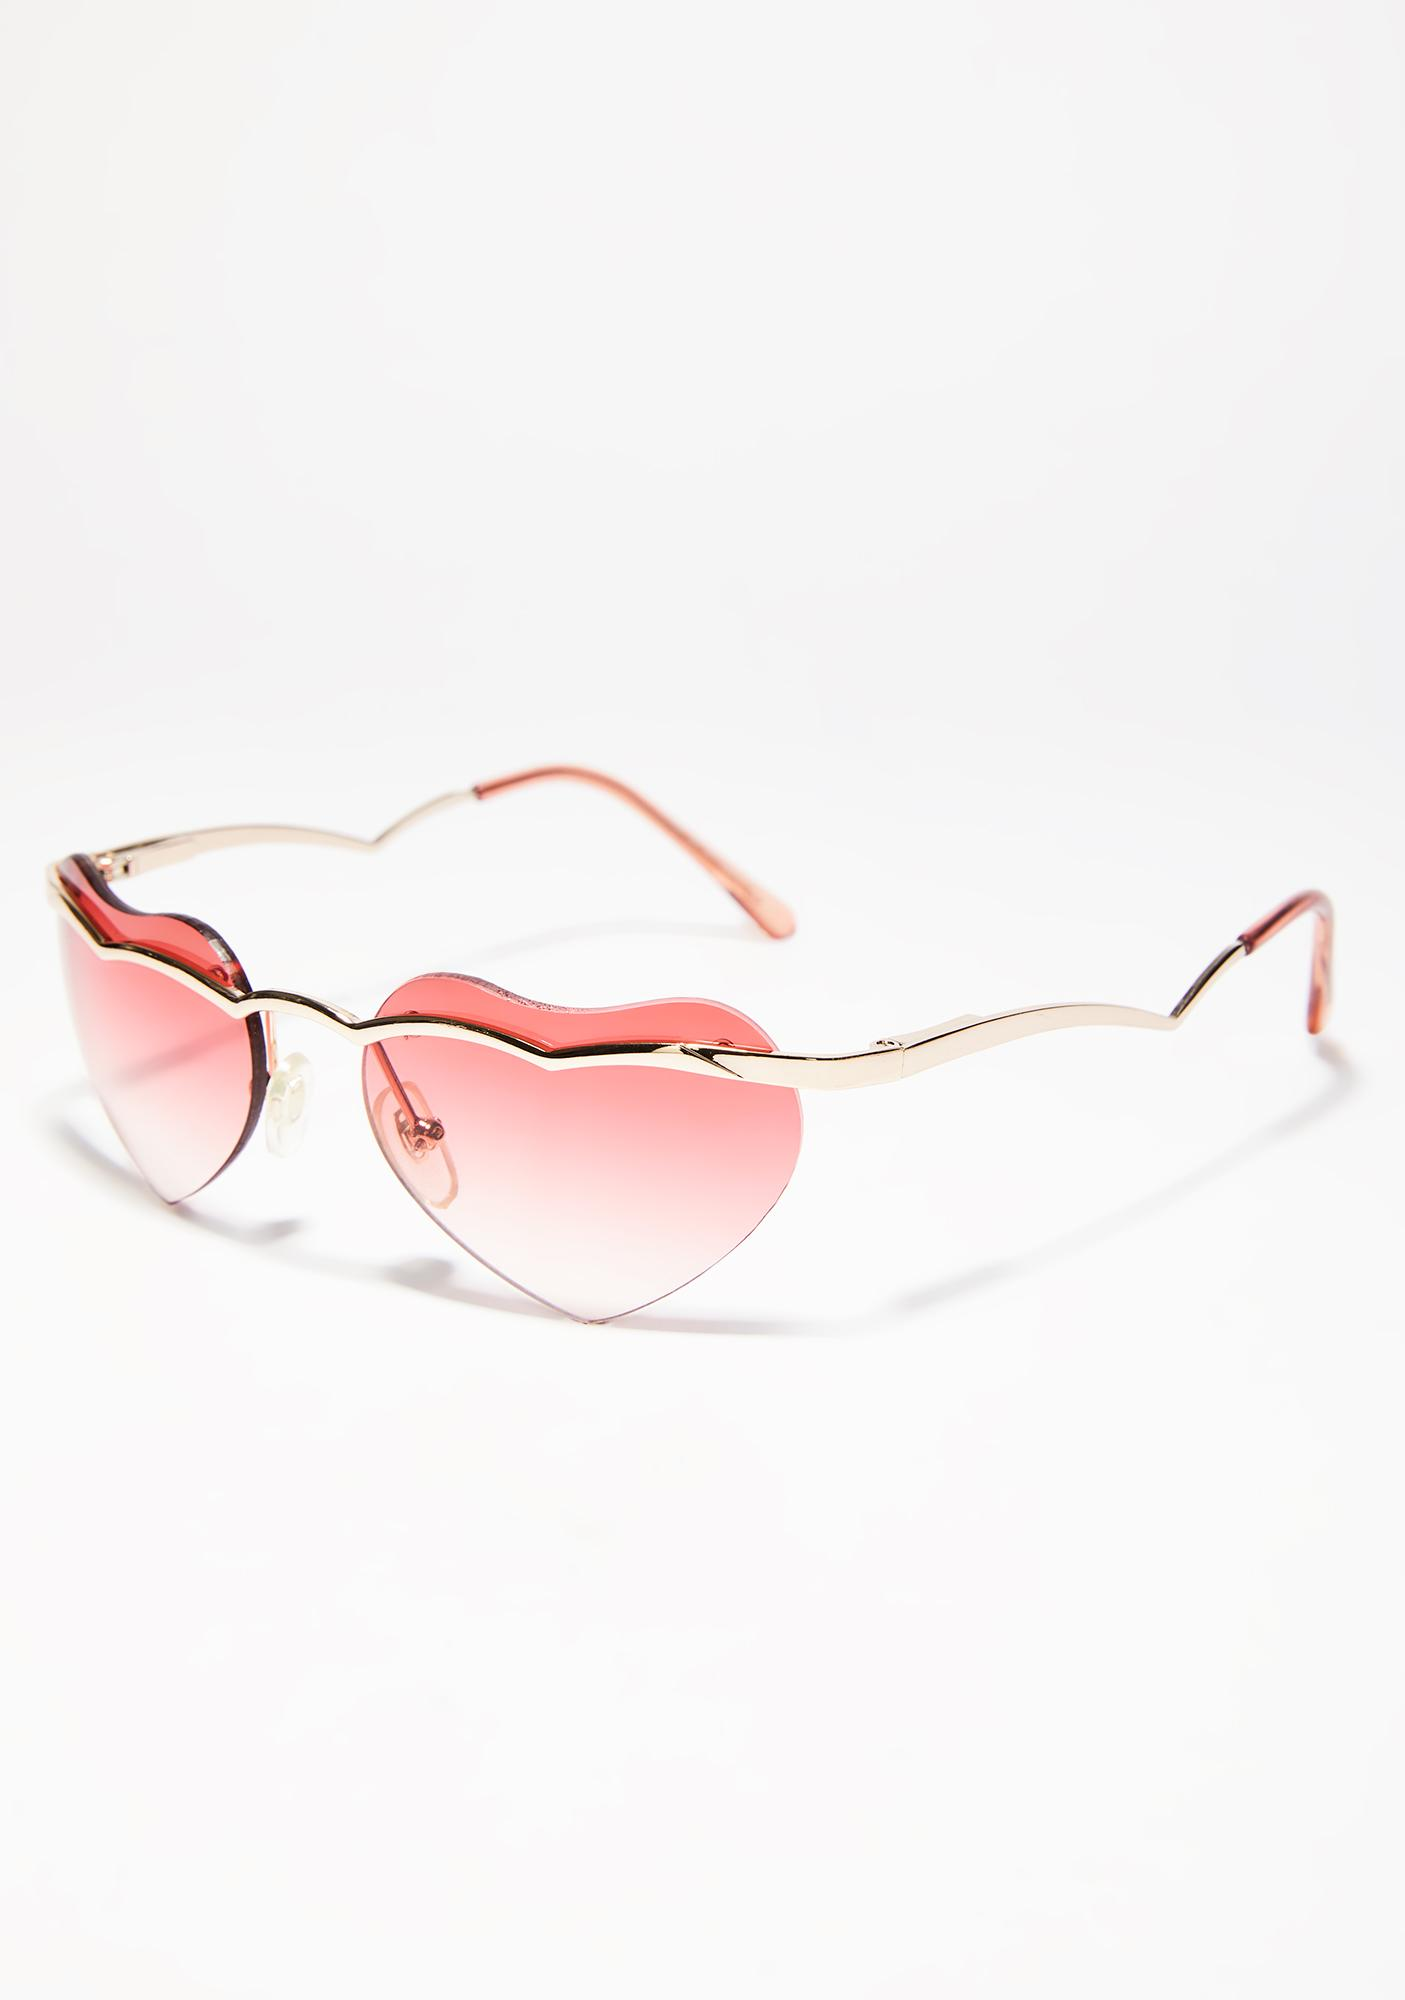 Flaming Cold Heart Sunglasses